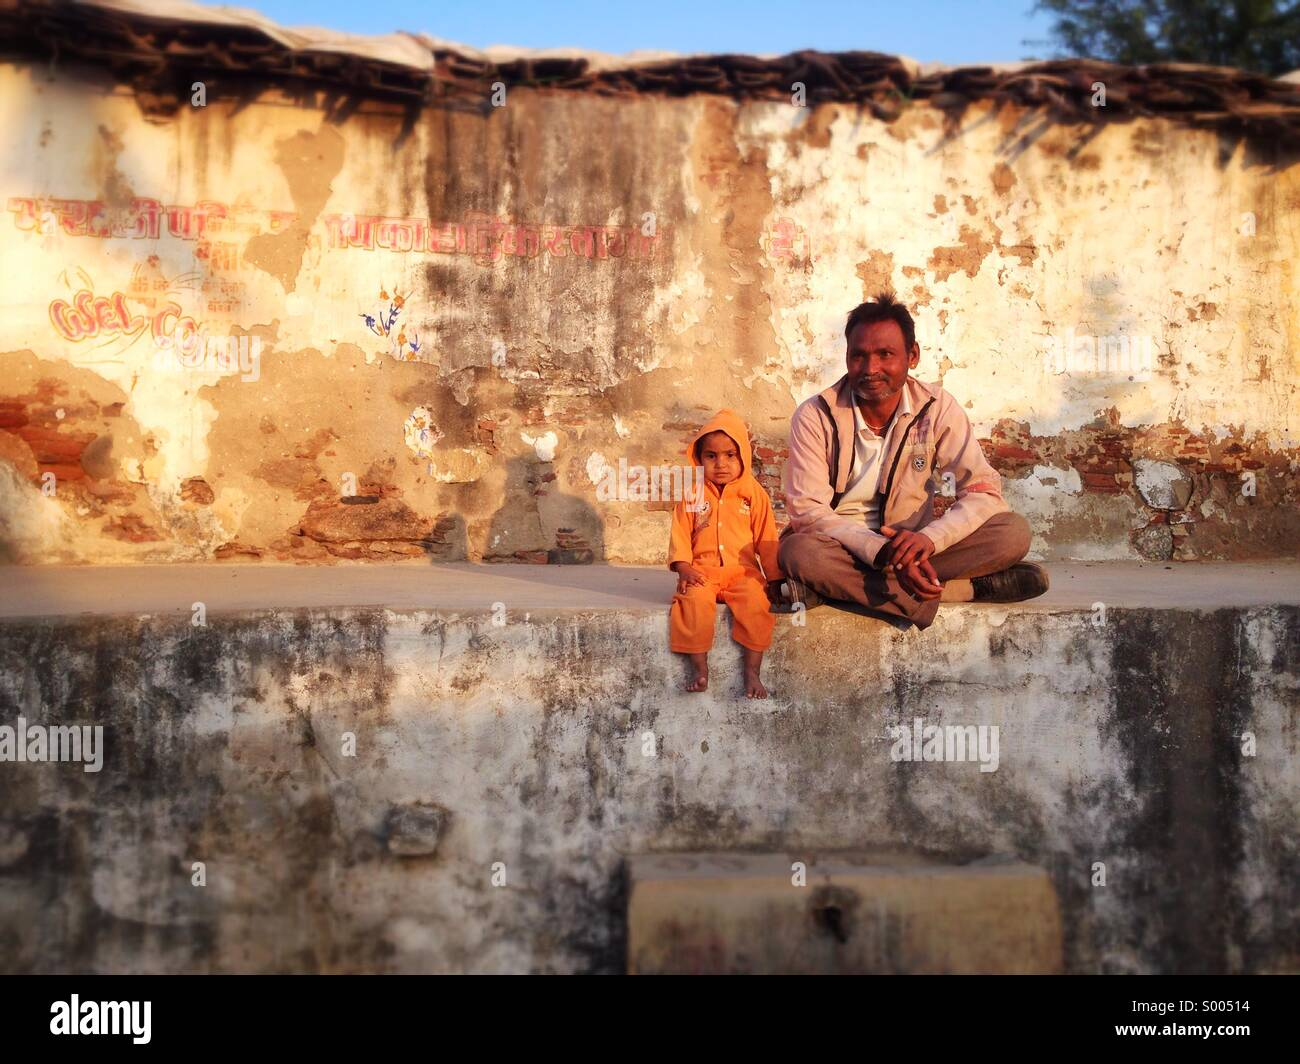 Man and child, Narlai, Rajasthan. - Stock Image